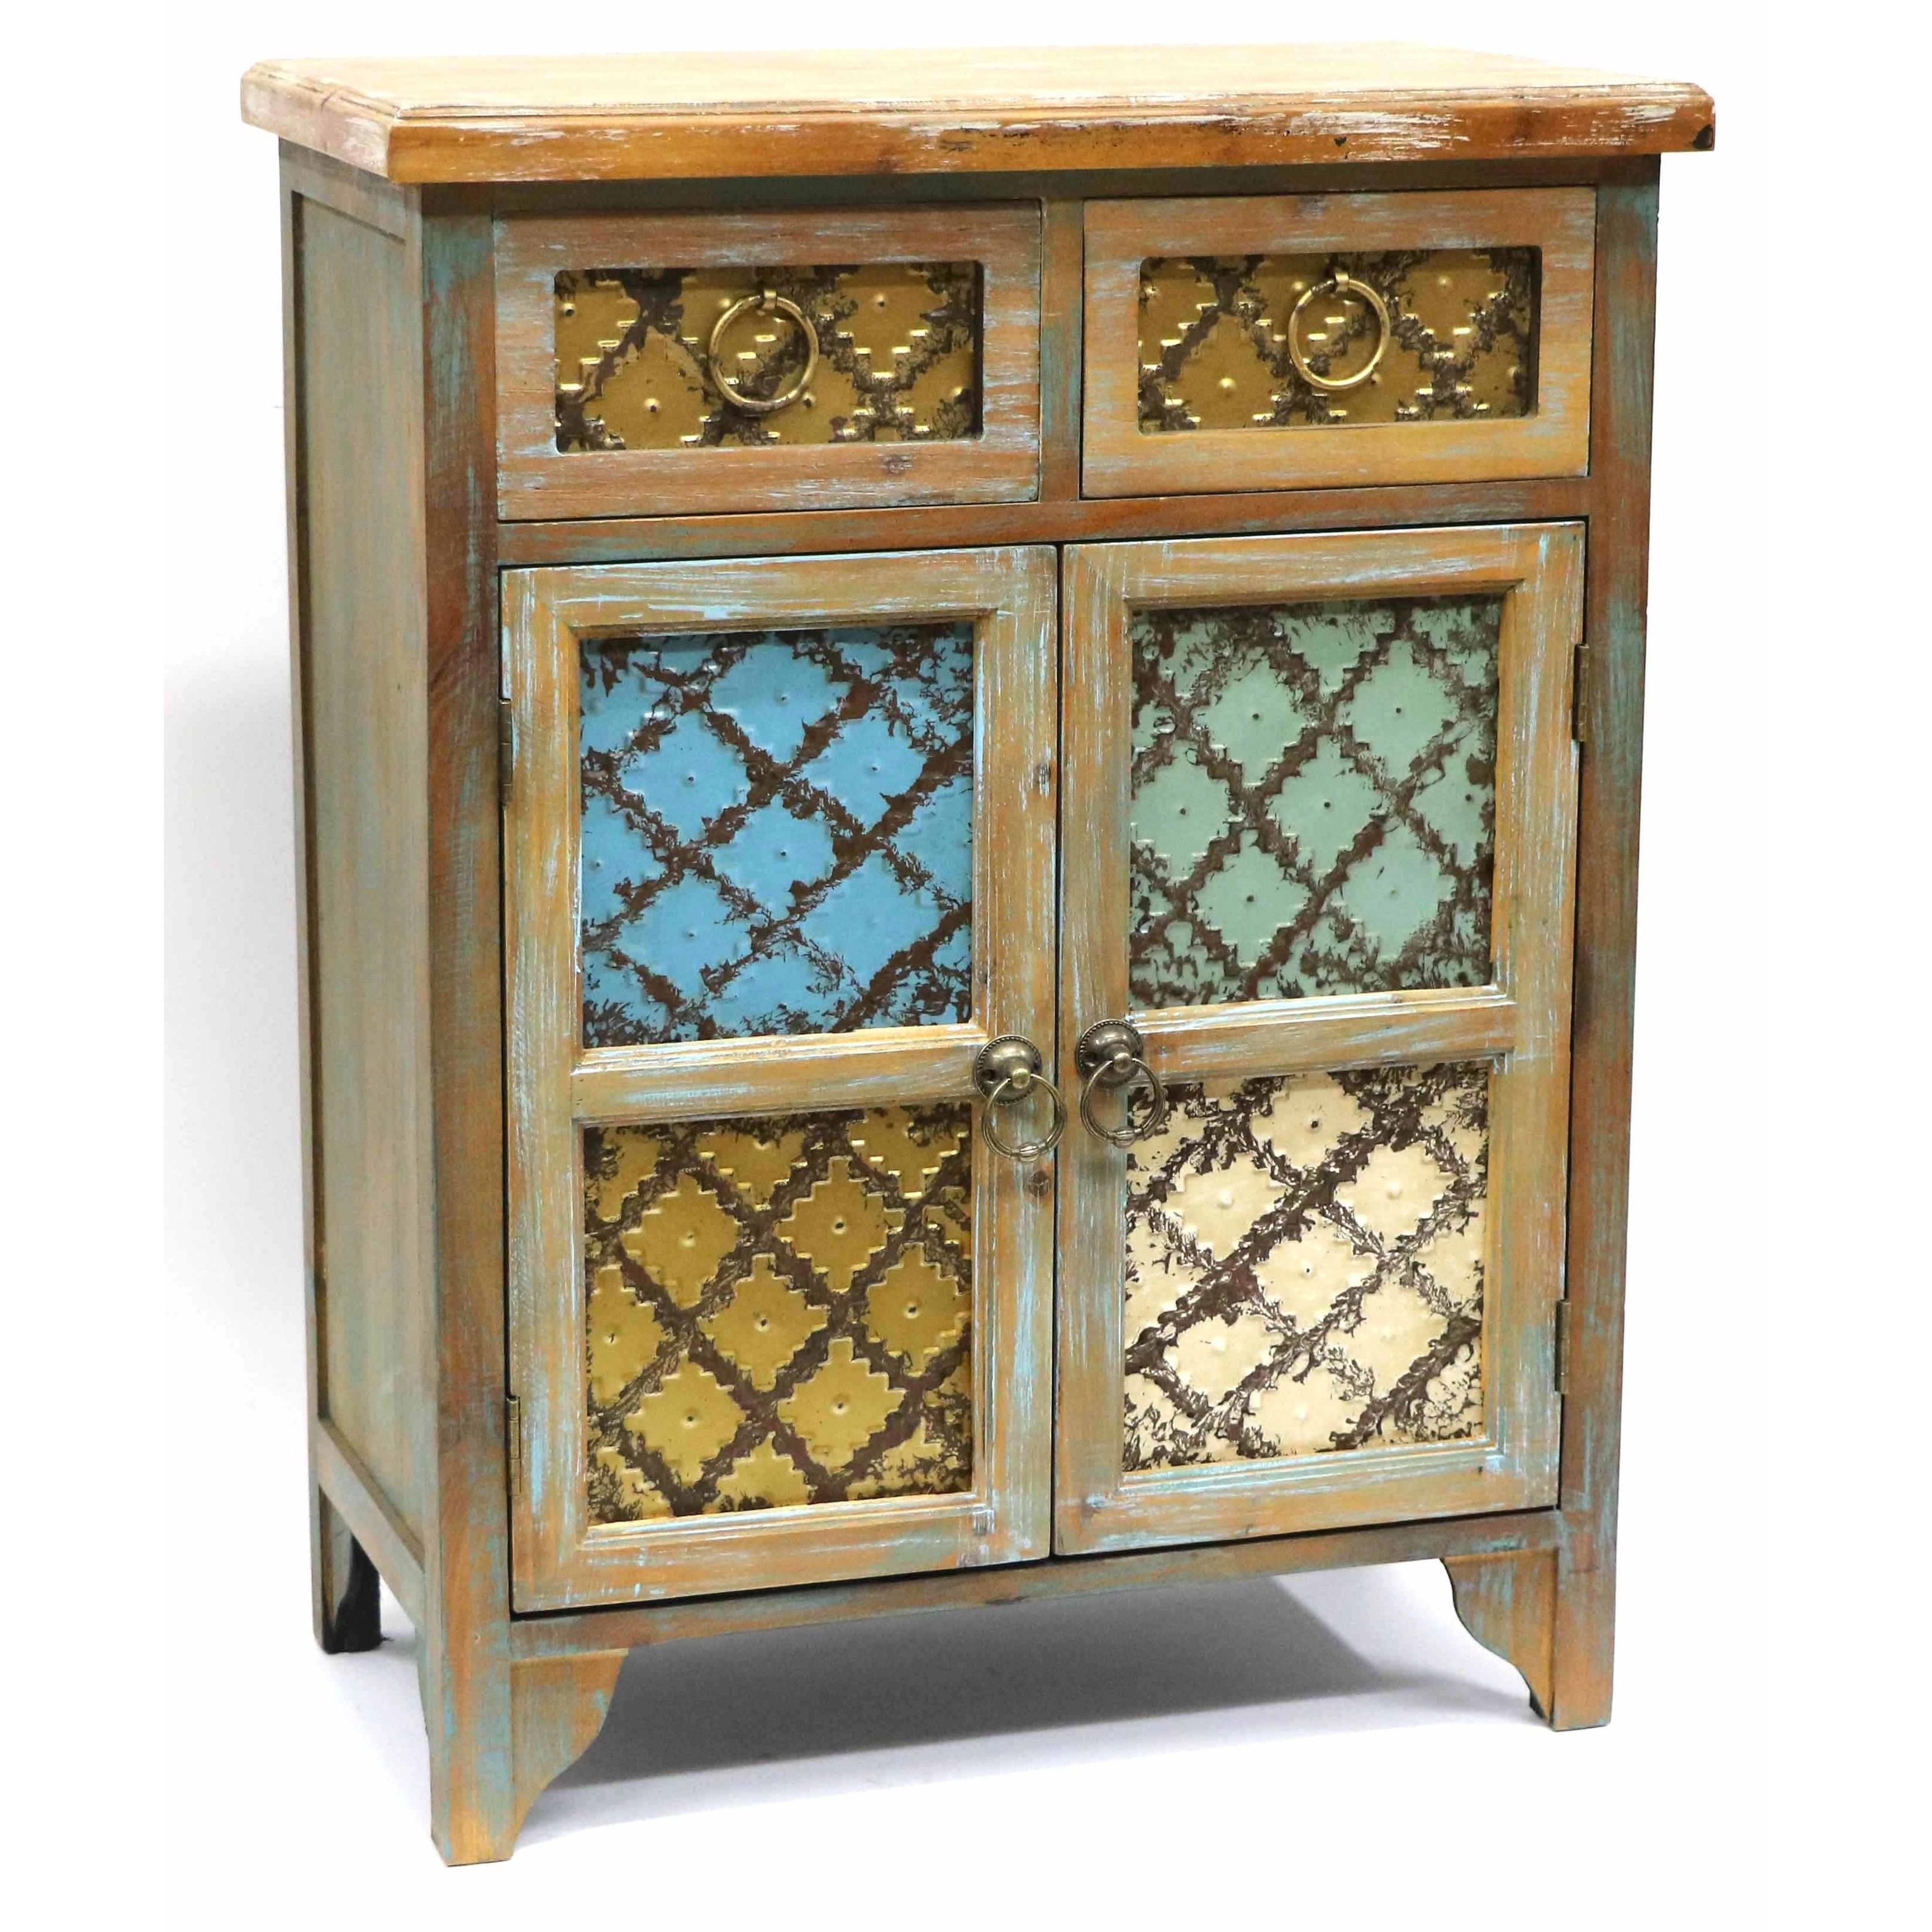 rustic storage cabinets. Jeco Colorful Rustic-style Storage Cabinet (Cabinet), Brown Rustic Cabinets S